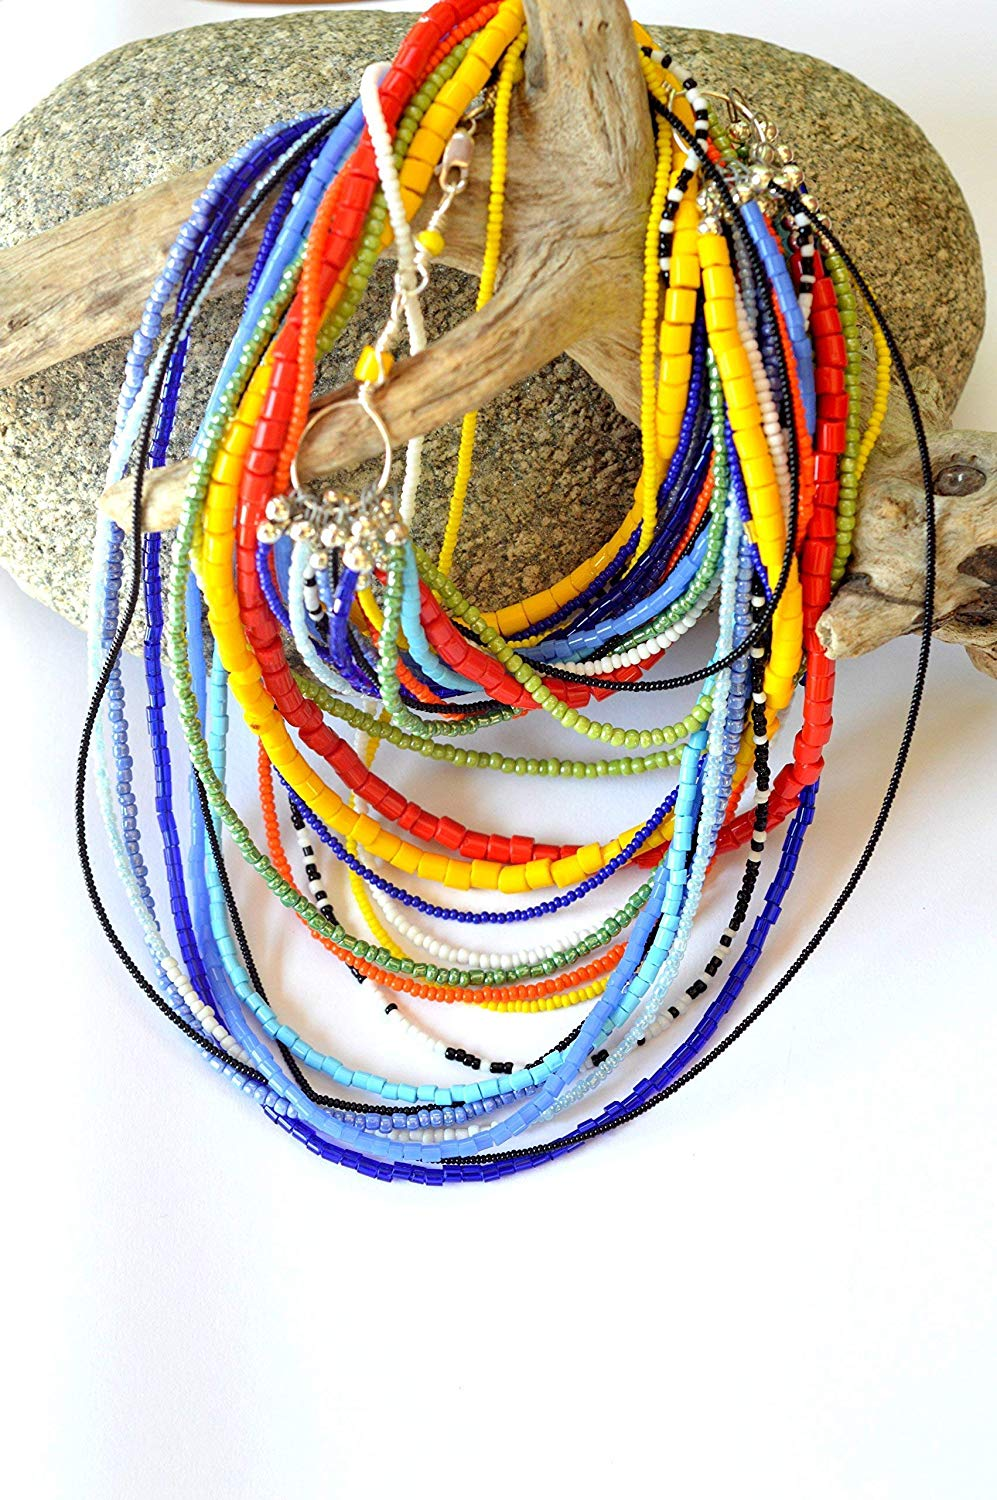 African necklace, Statement necklace, Bohemian necklace, African necklace for women, Gift for her, Birthday gift women, Colorful necklace, Beaded necklace, Tribal necklace, Layered necklace long